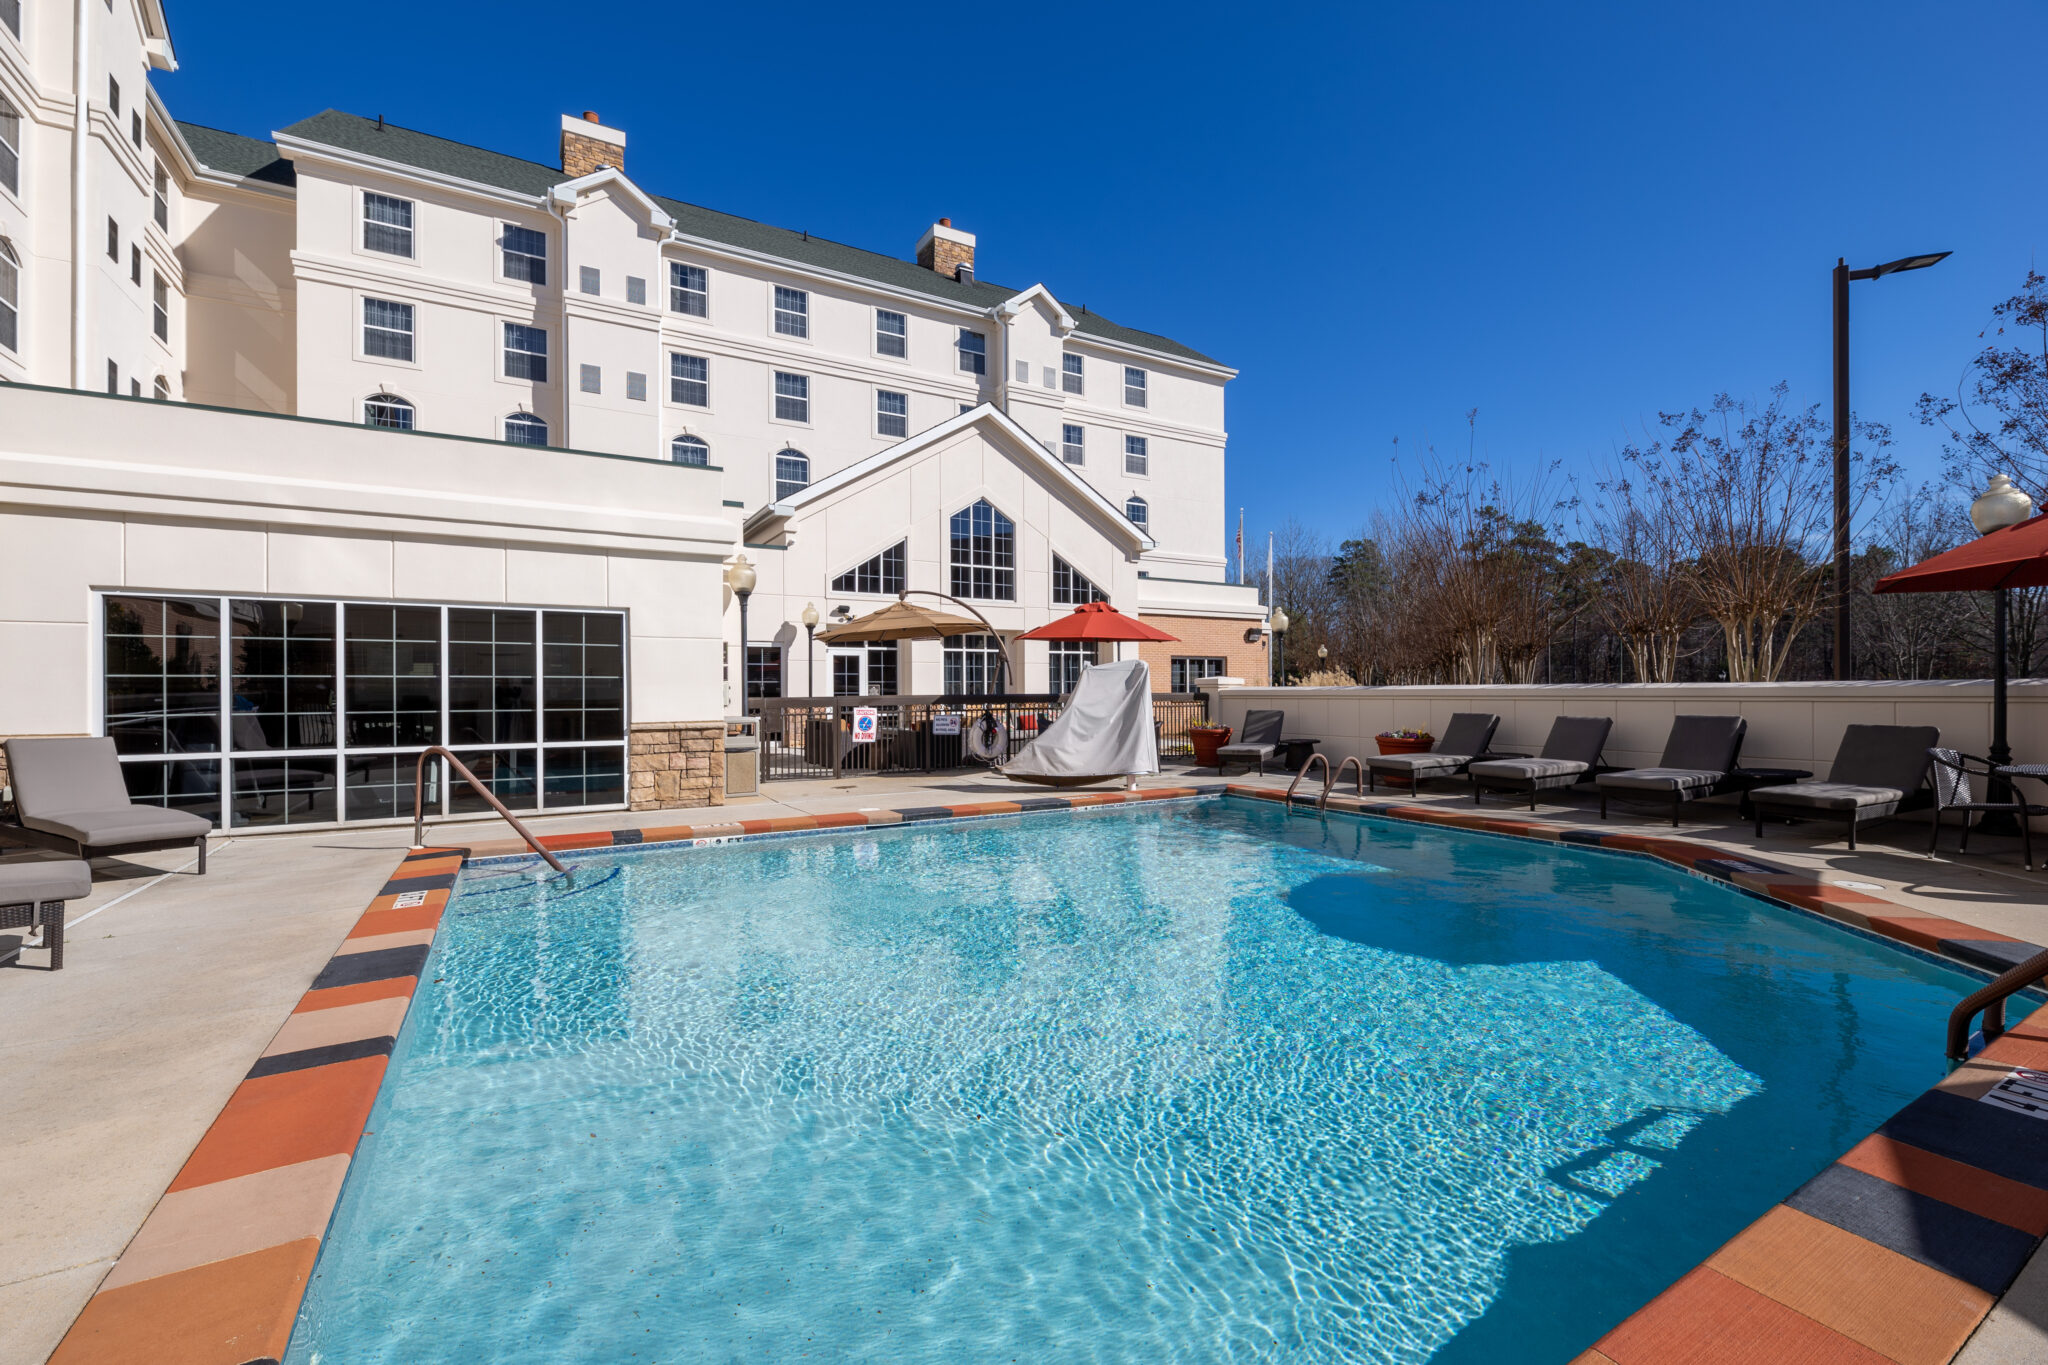 Homewood Suites by Hilton Lawrenceville Duluth ATLHW Pool-1